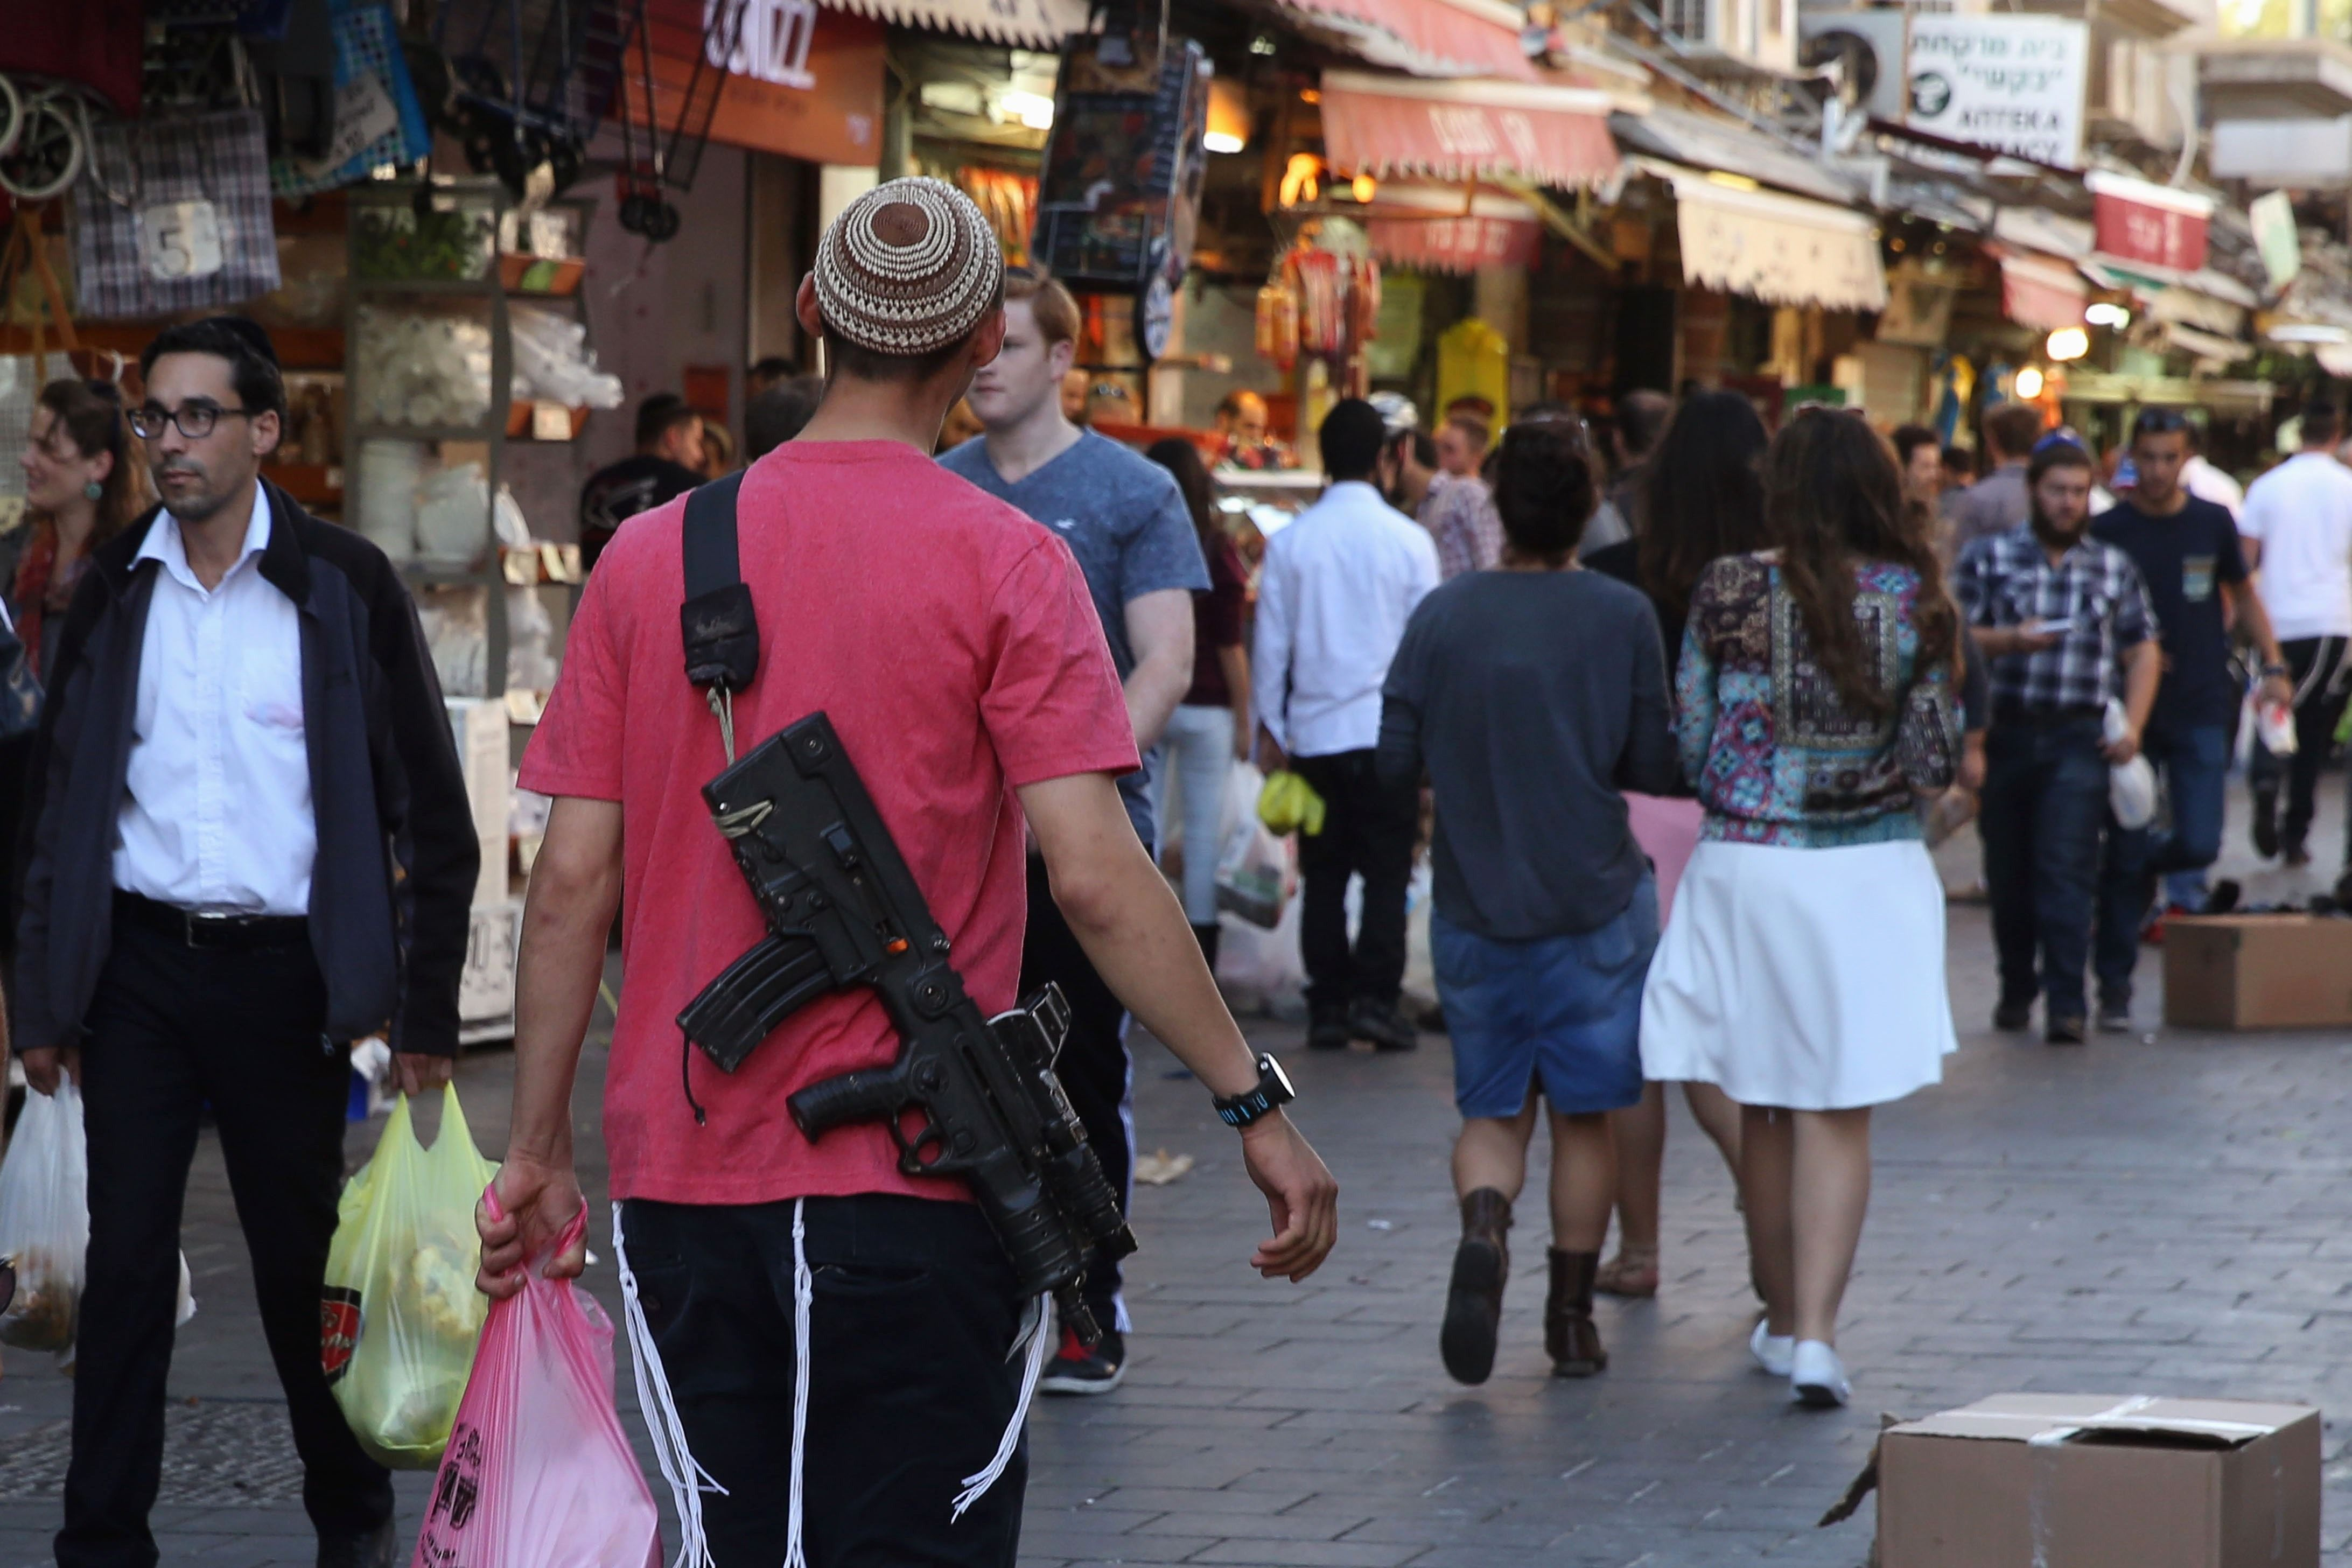 FACT CHECK: Israel Does Not Have An Armed Citizenry, Mr